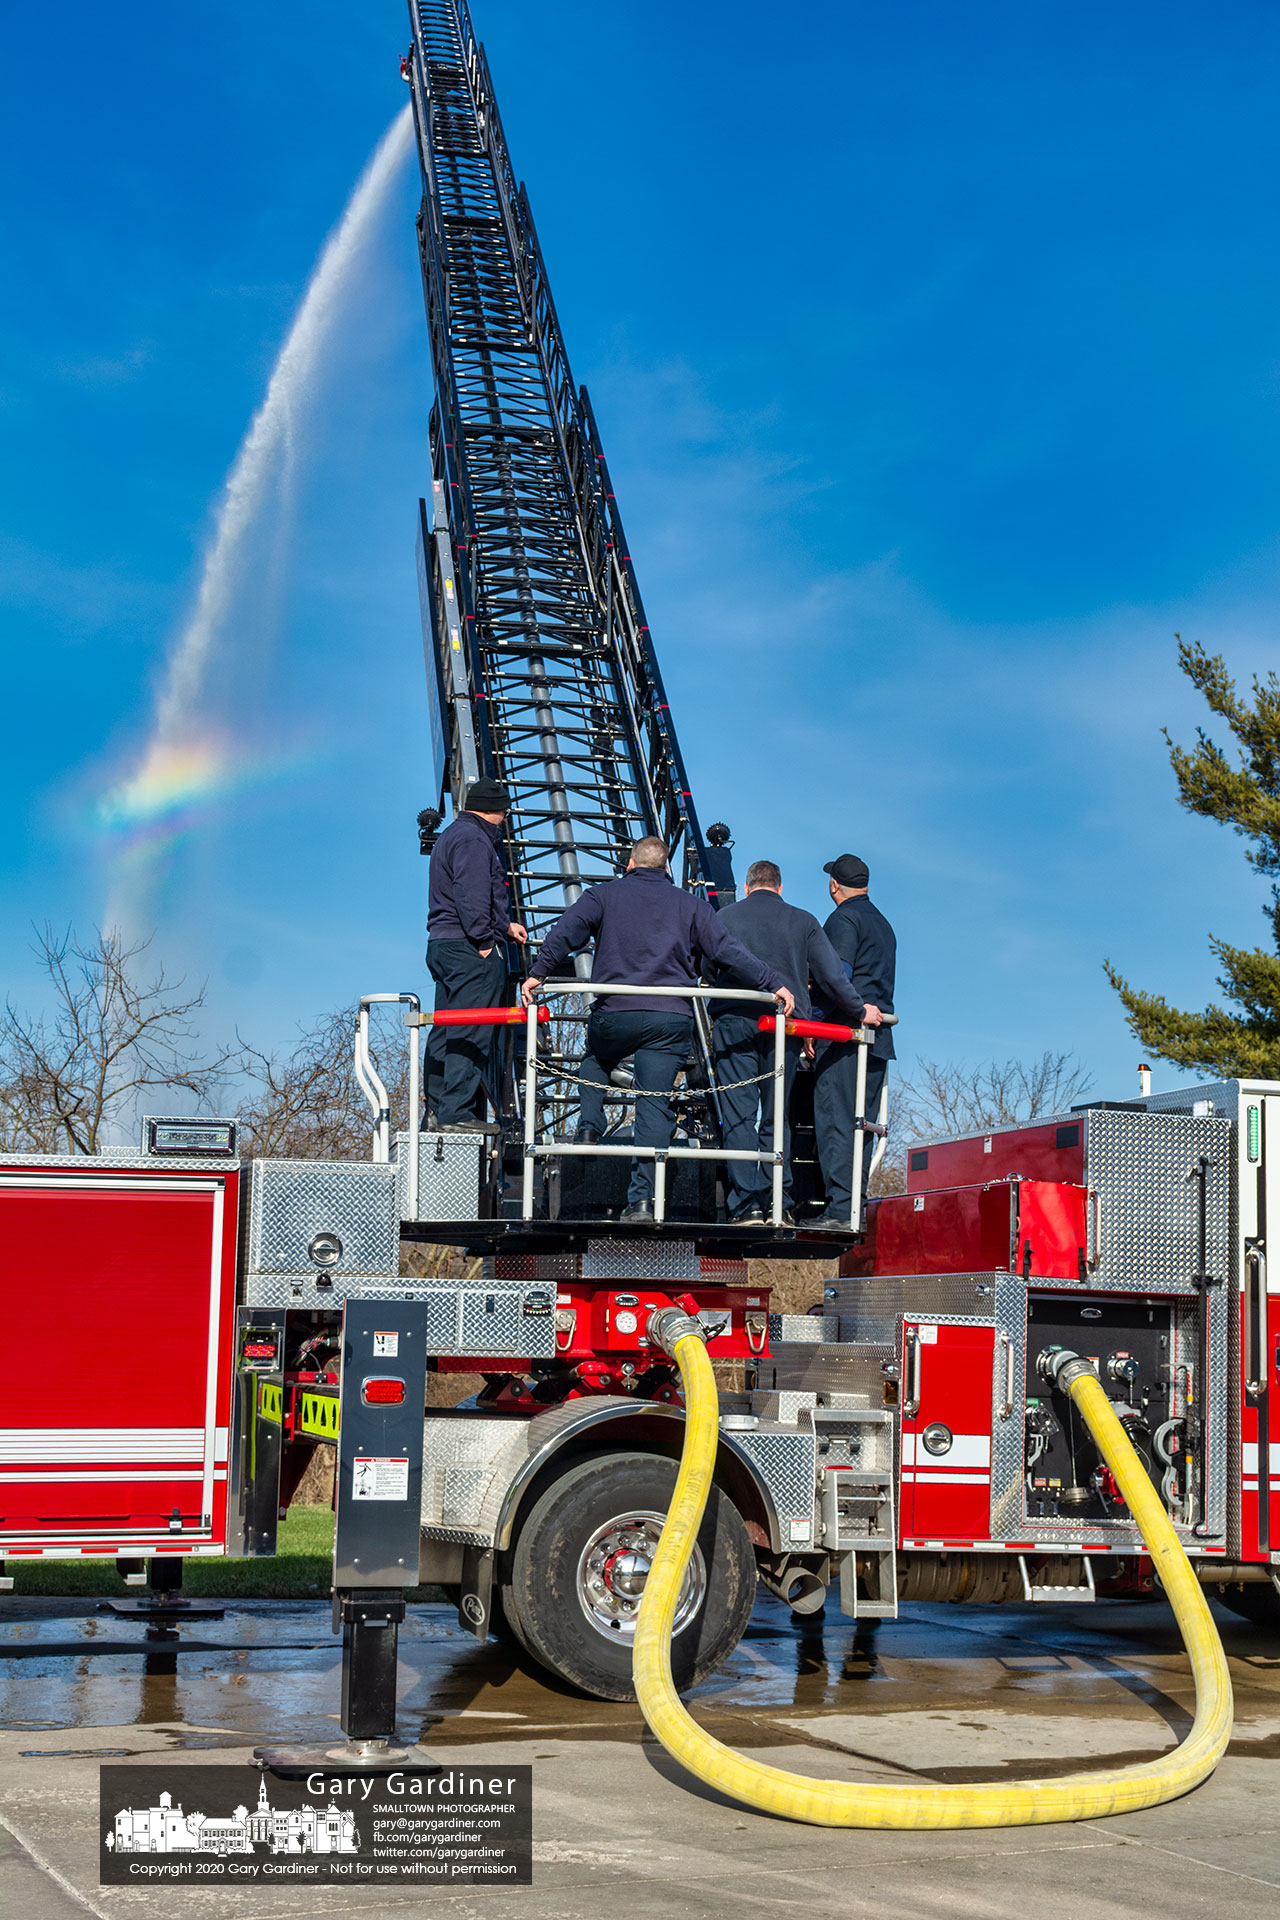 Westerville firefighters tested hose couplings on the department's new Hook and Ladder Co. 111 tiller truck at the fire station creating a small rainbow over a retention pond behind the building. My Final Photo for Jan. 13, 2021.